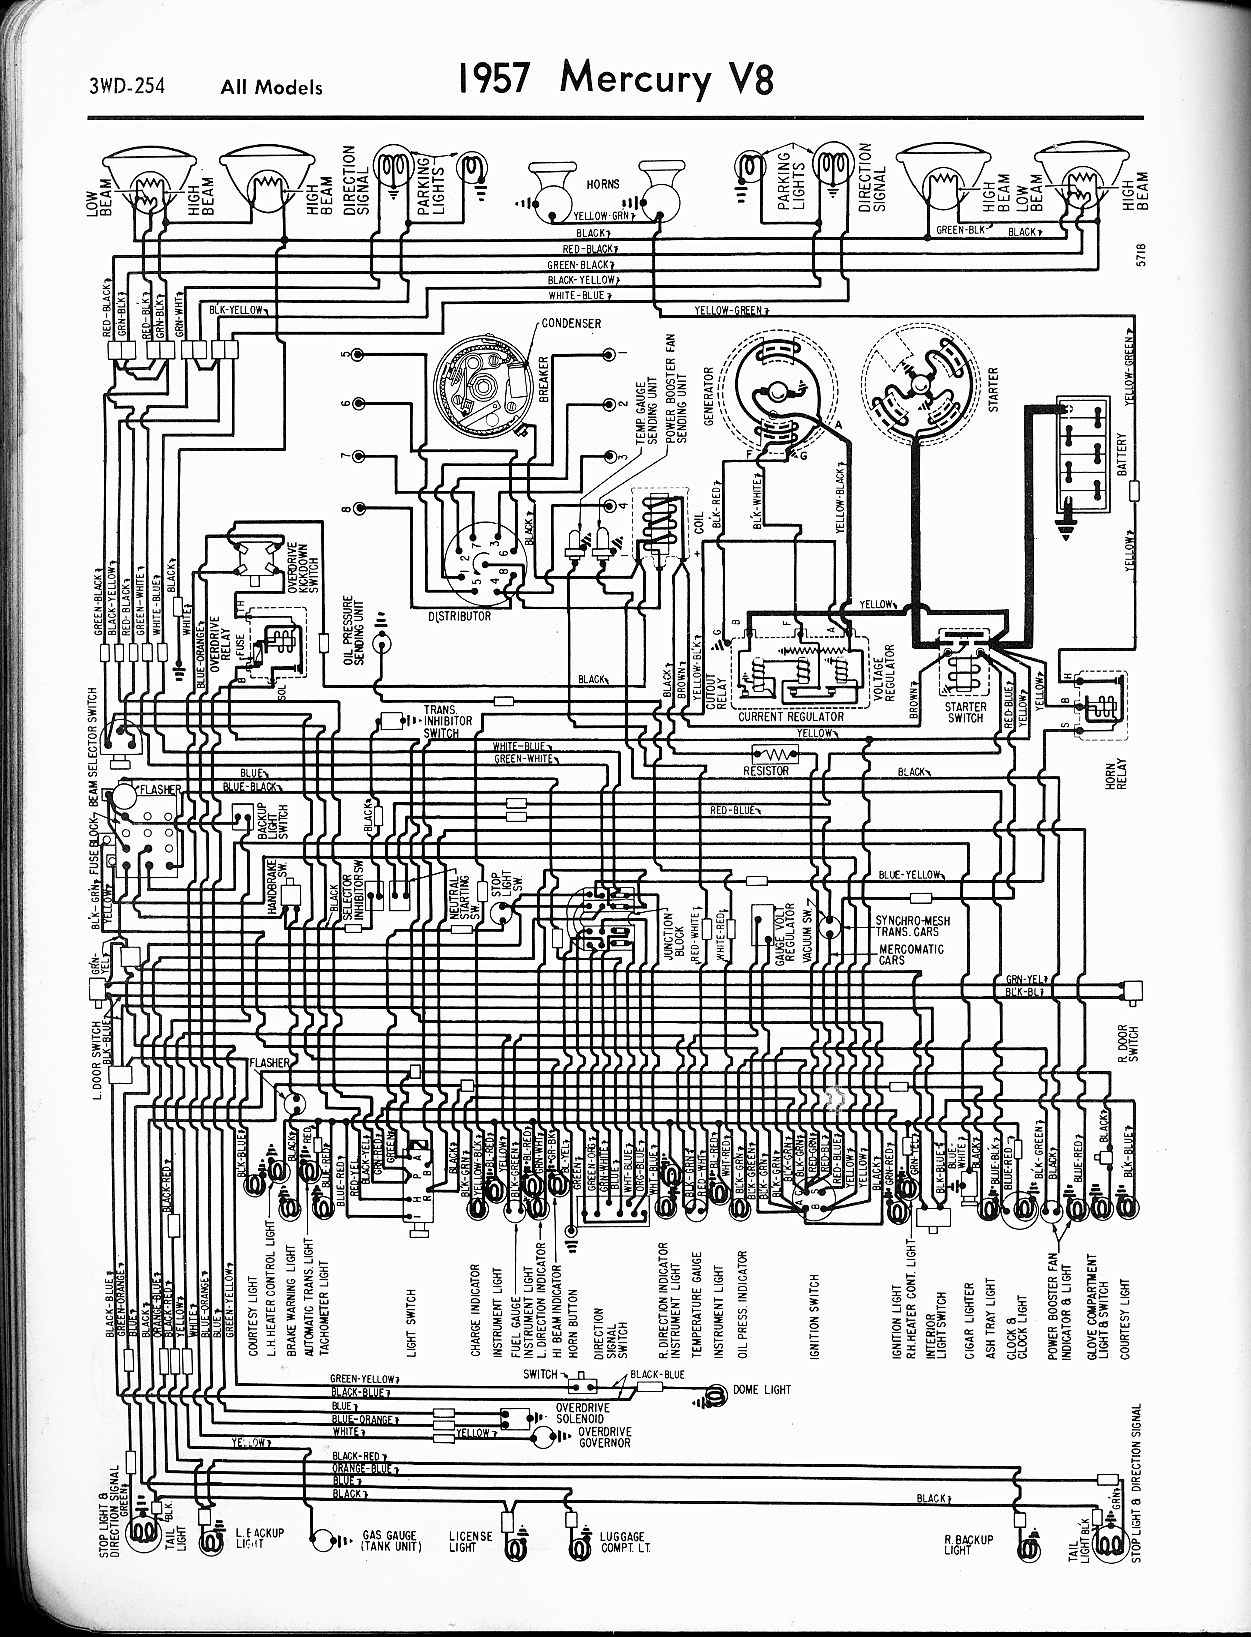 55 Chev Wiring Diagram Mercury Wiring Diagrams The Old Car Manual Project